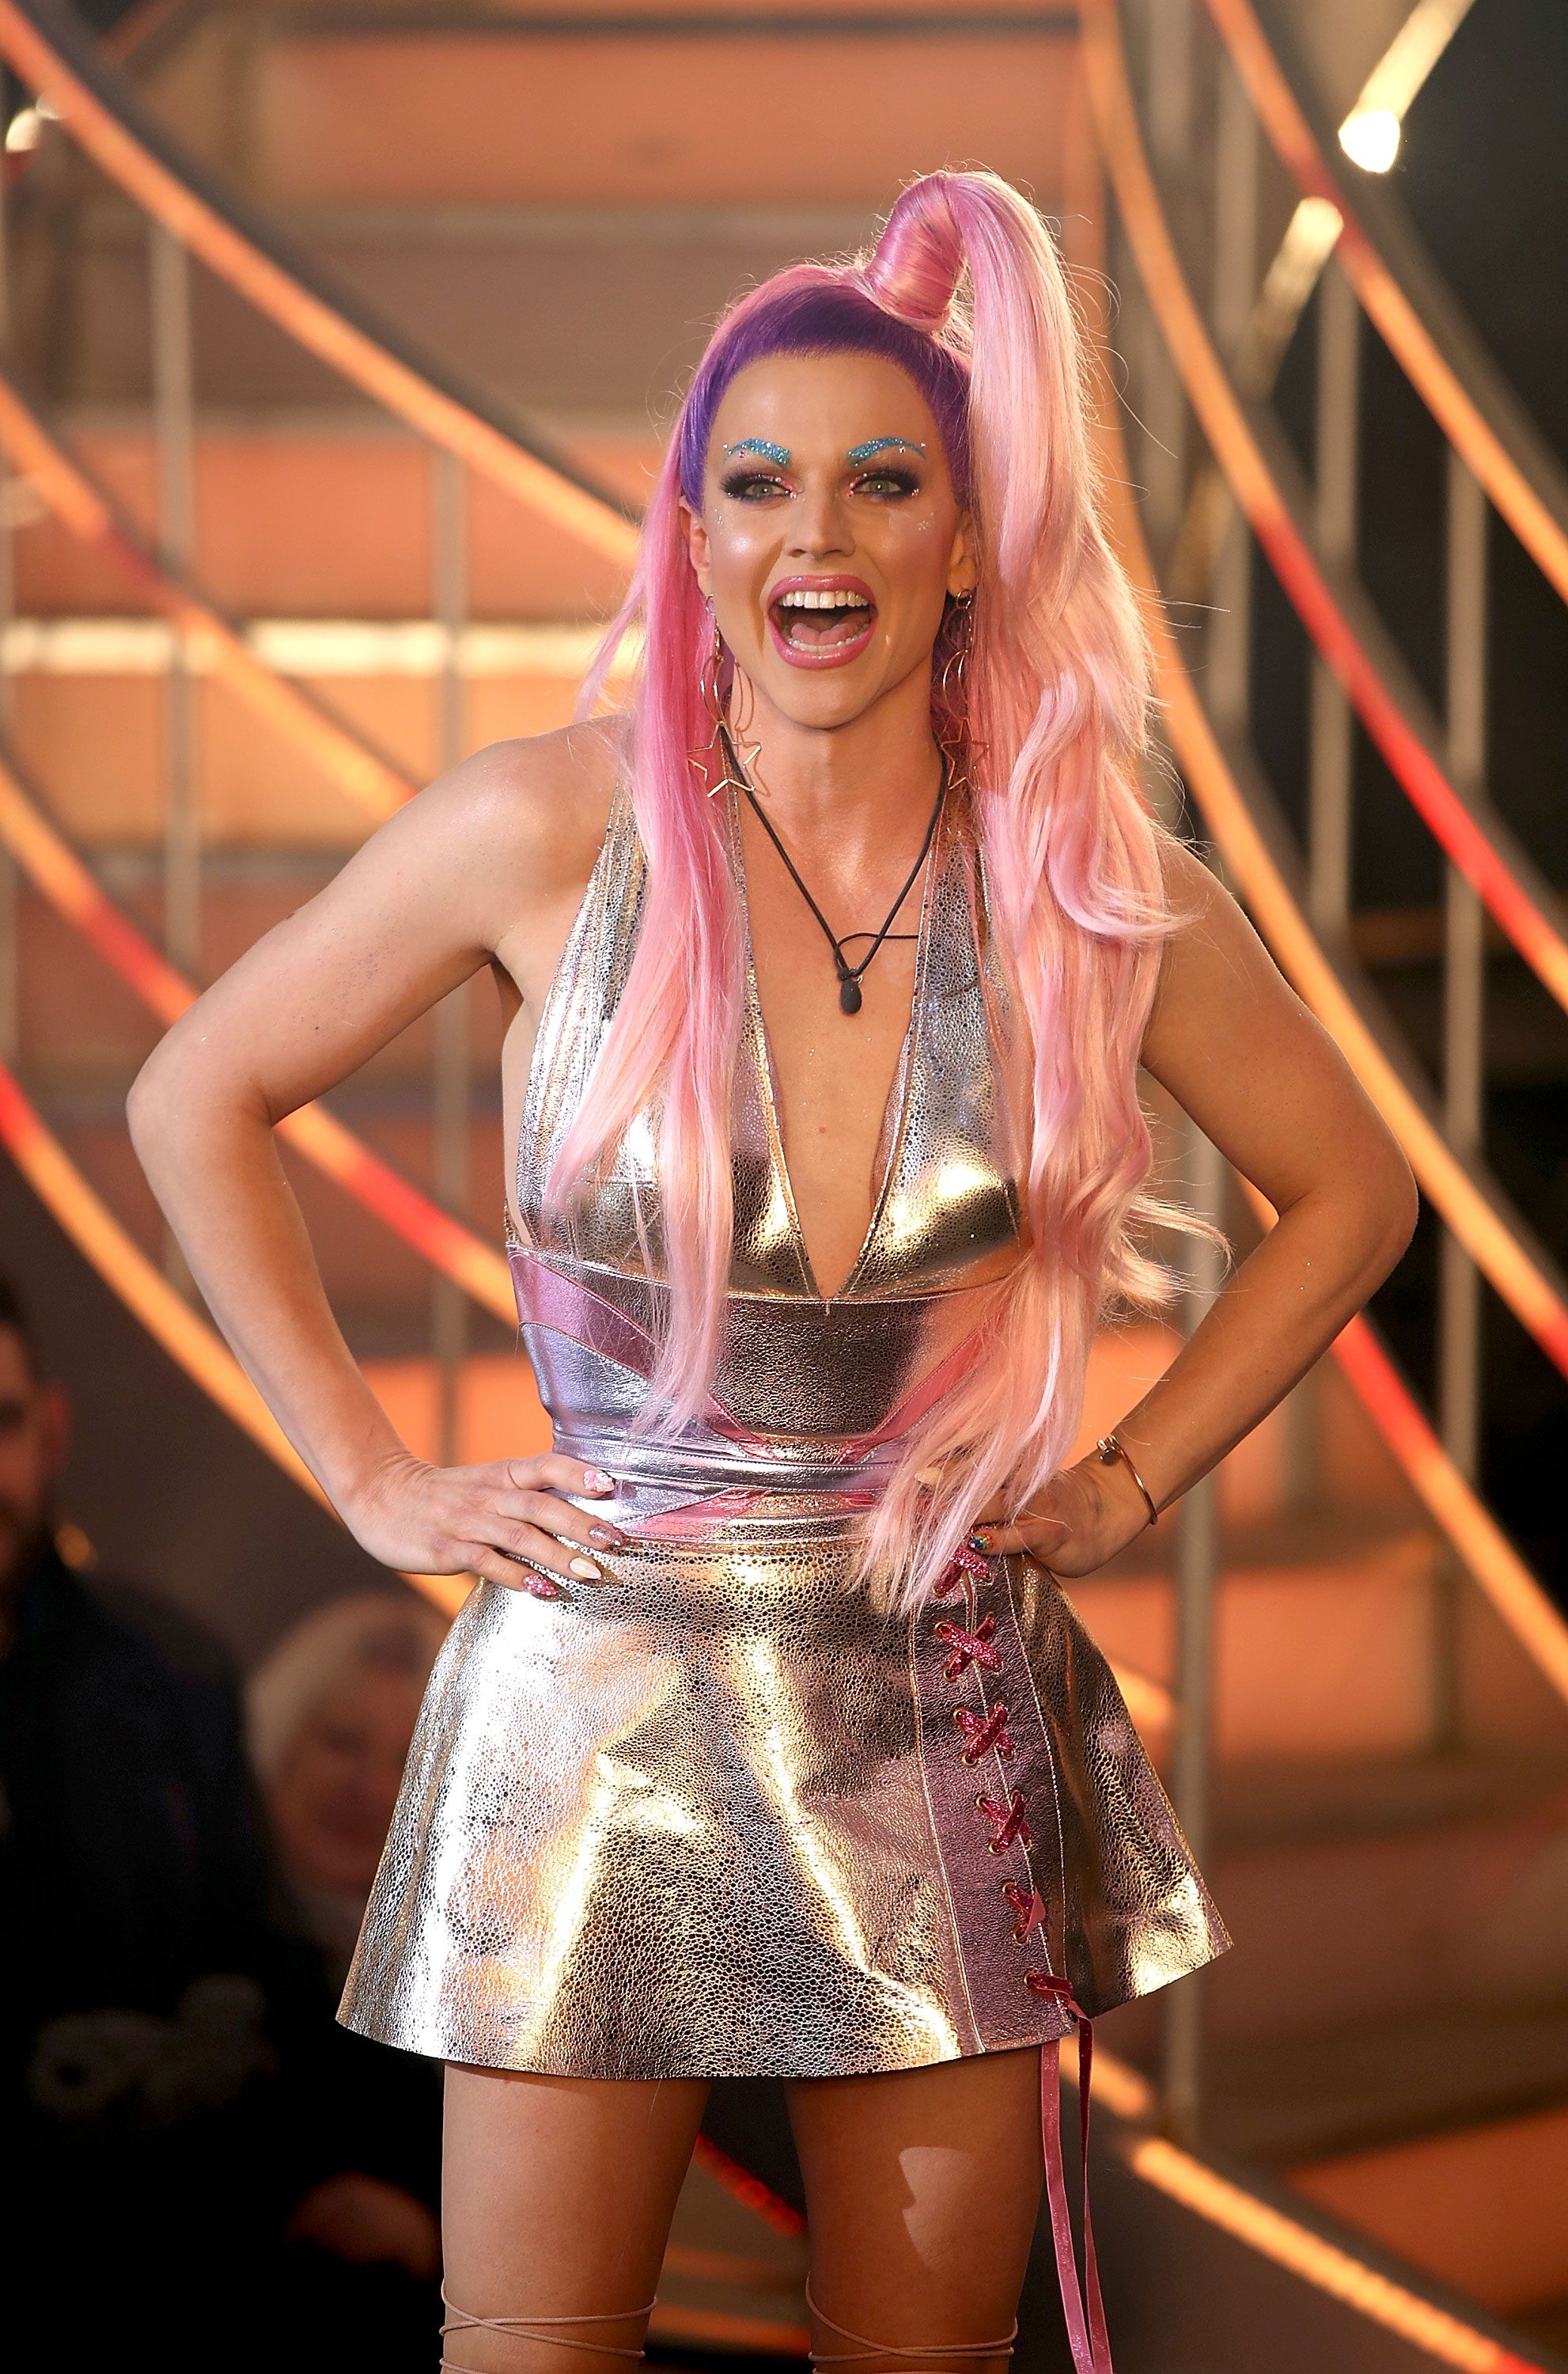 Dancing with the Stars' Courtney Act weighs in on criticism of Strictly Come Dancing same-sex dance pairings